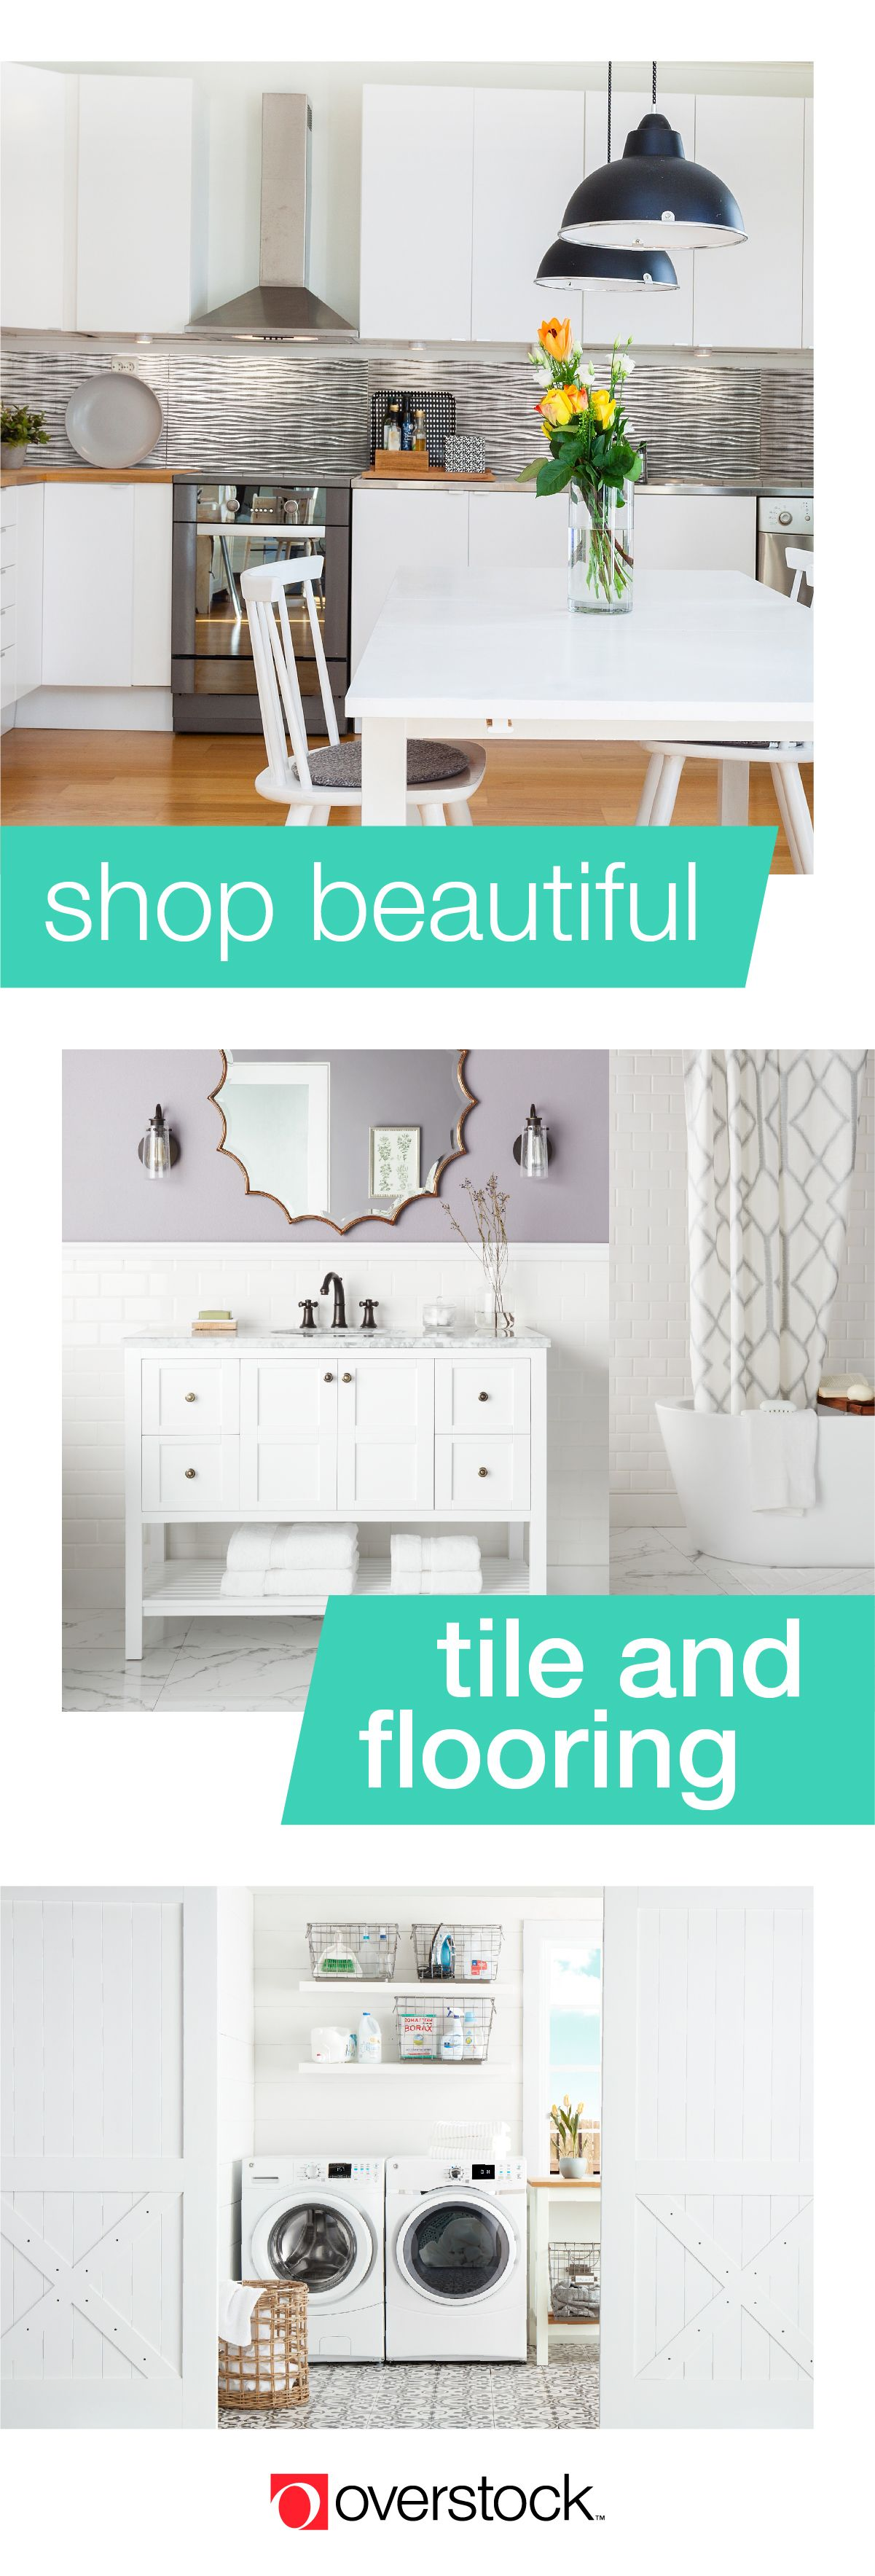 Home depot wall tile fireplace :: gocontent.ipv.io